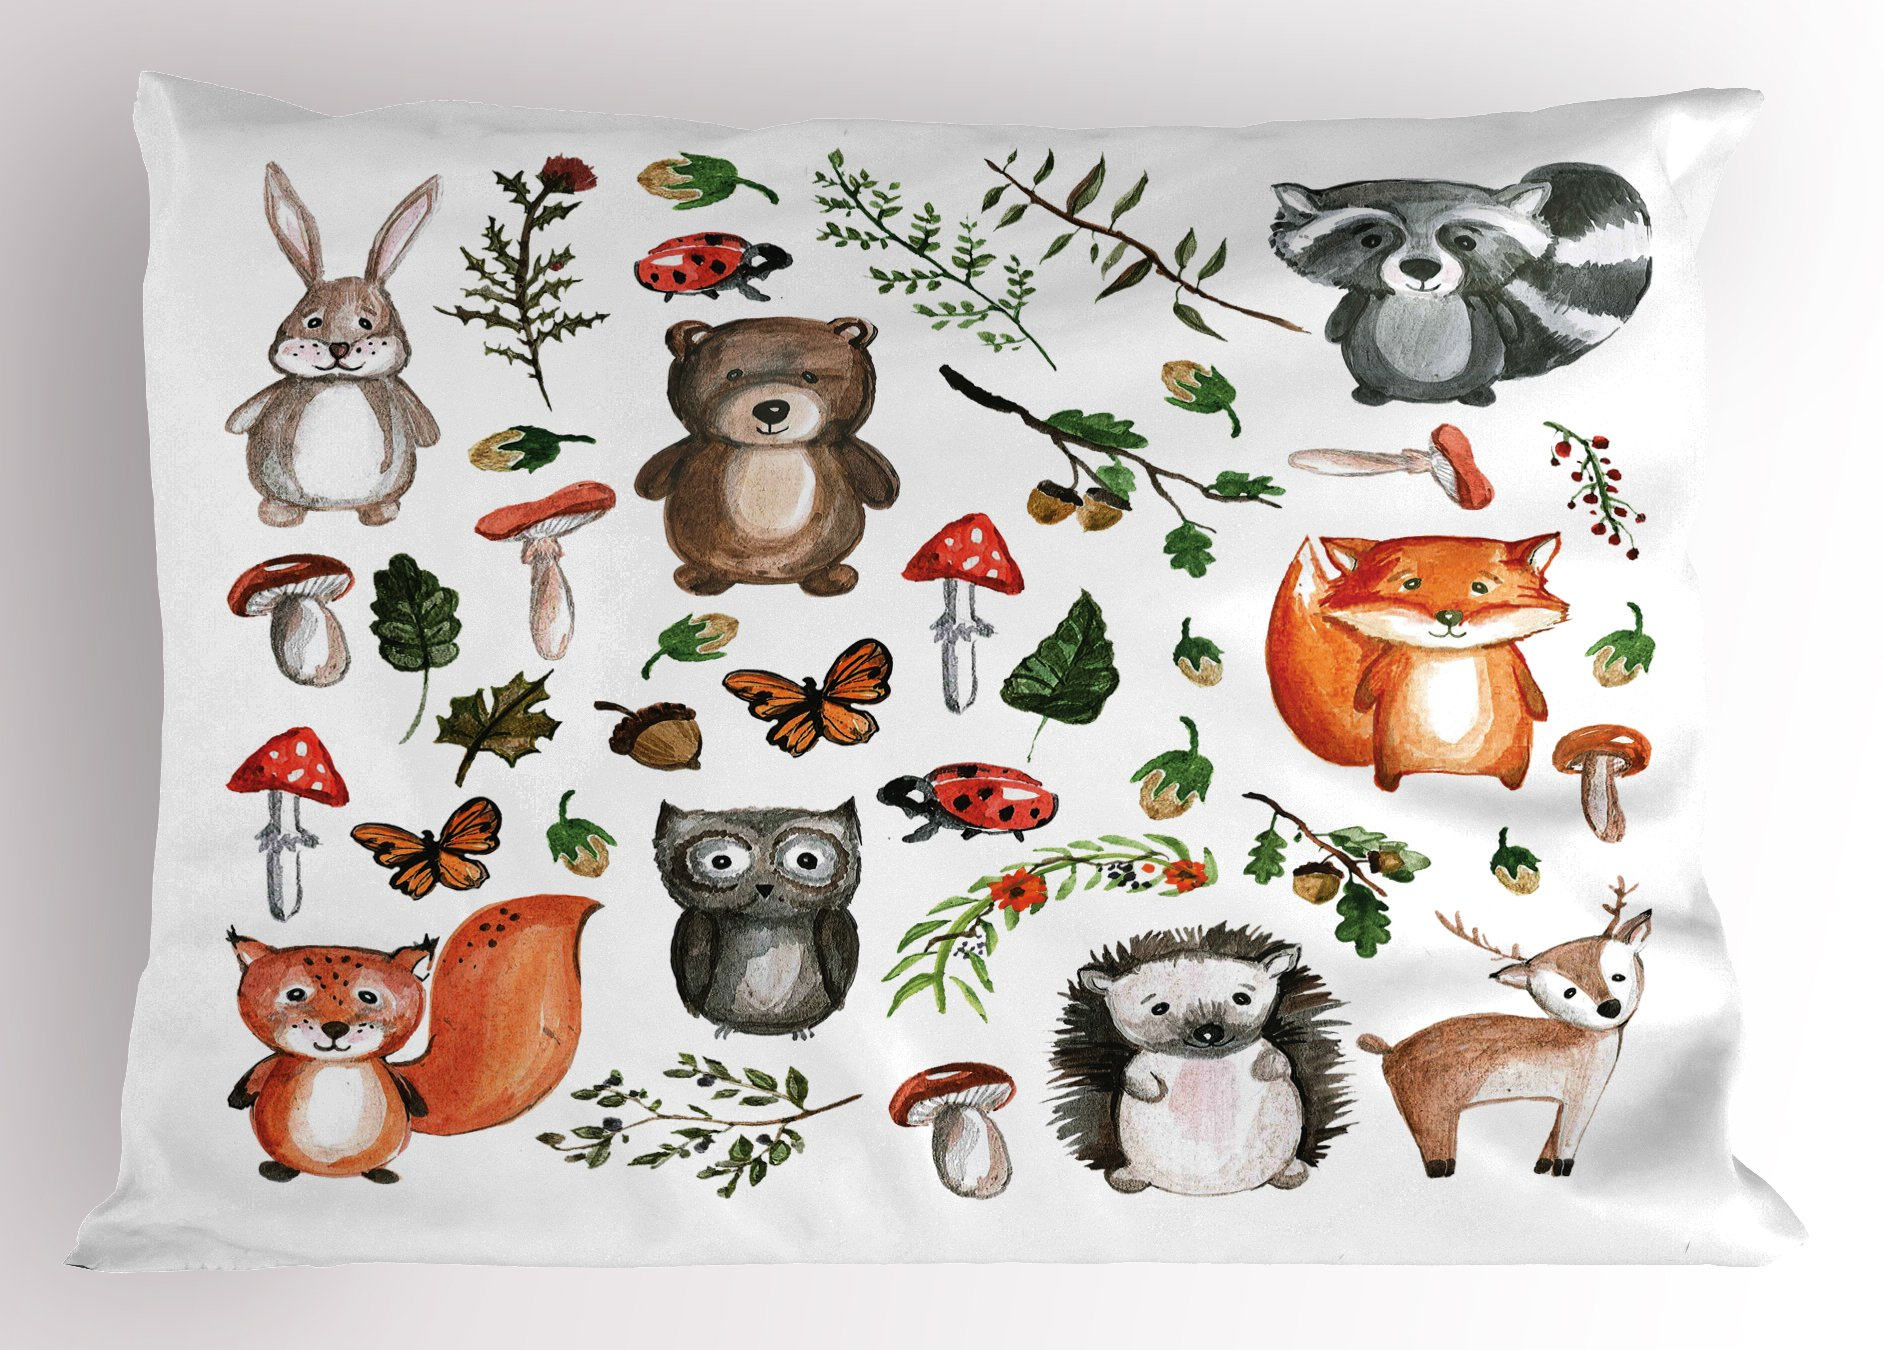 Lunarable Woodland Pillow Sham, Watercolor Hand Drawn Forest Animals Illustration Among Elements of The Woods, Decorative Standard Size Printed Pillowcase, 26 X 20 inches, Multicolor